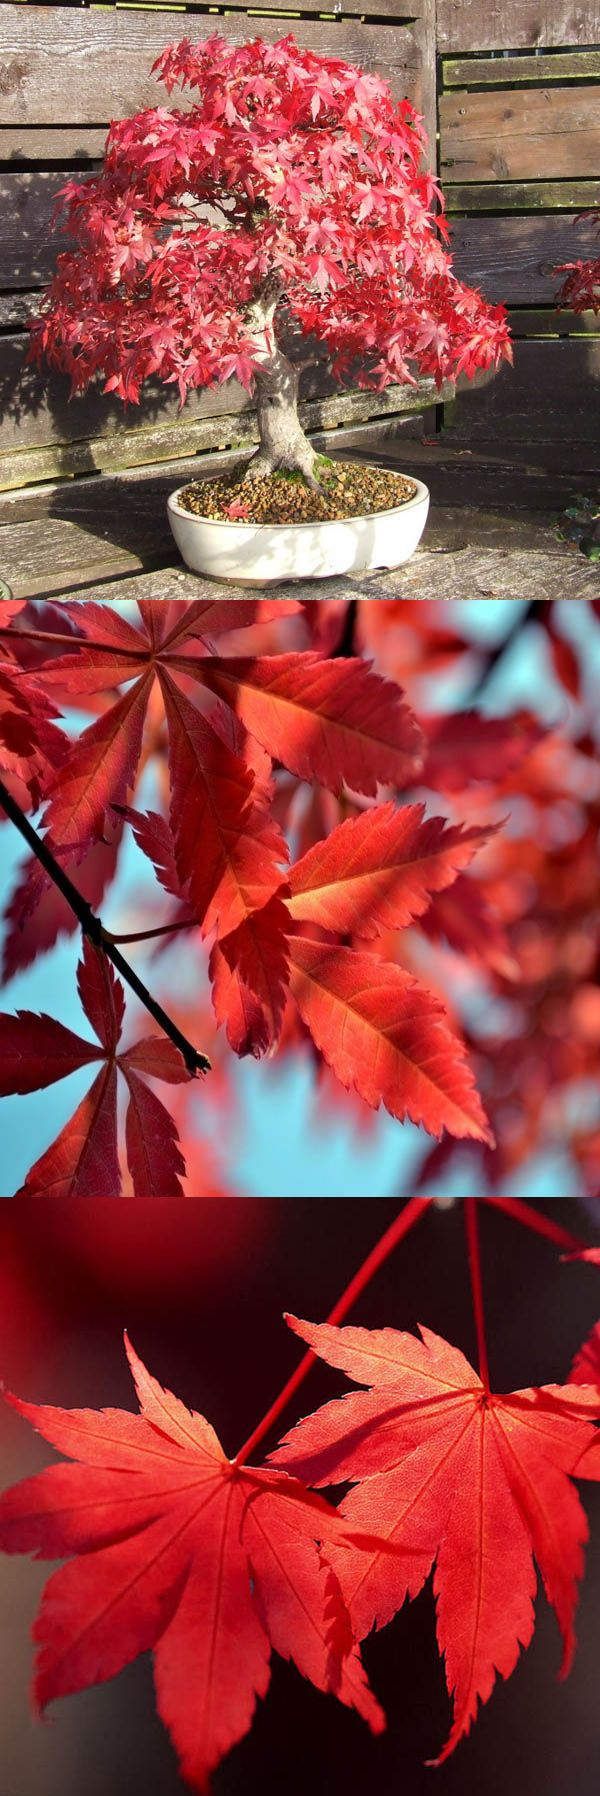 US$ 2.59 10pcs Red Maple Seeds Click to see details at Newchic.com